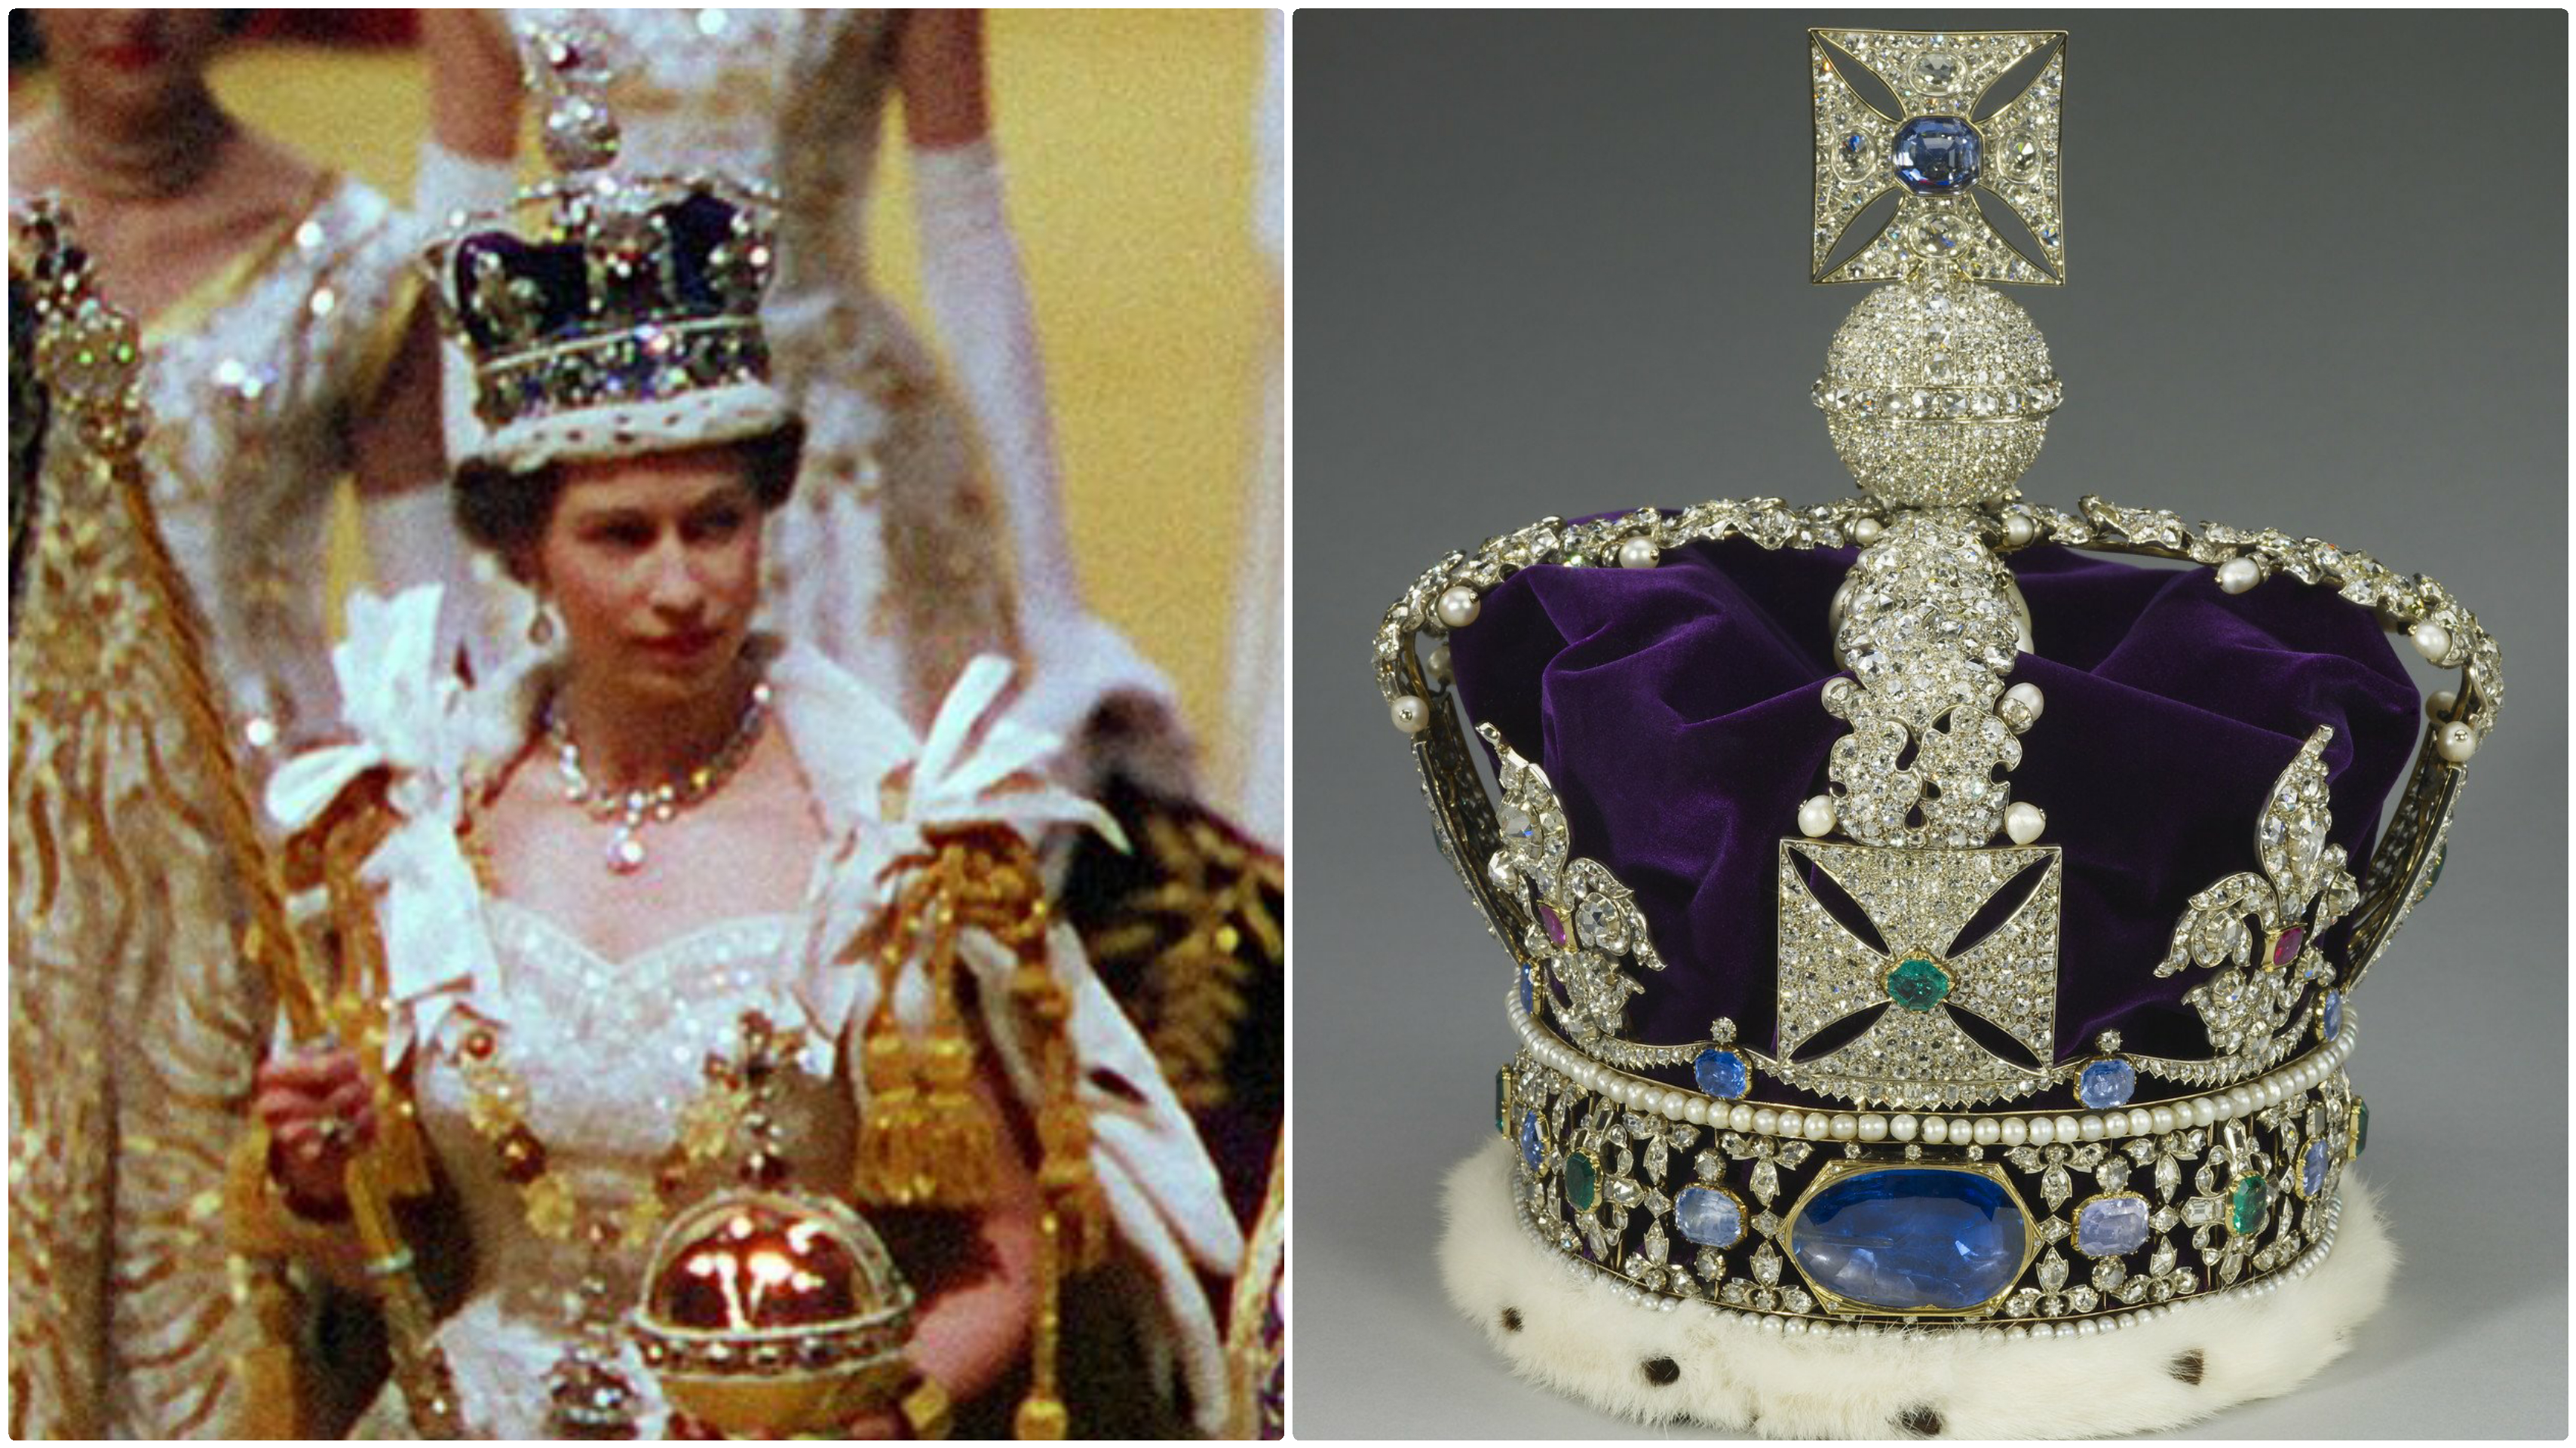 The World's Largest Diamond Was Stolen From Africa And Put On The British Crown